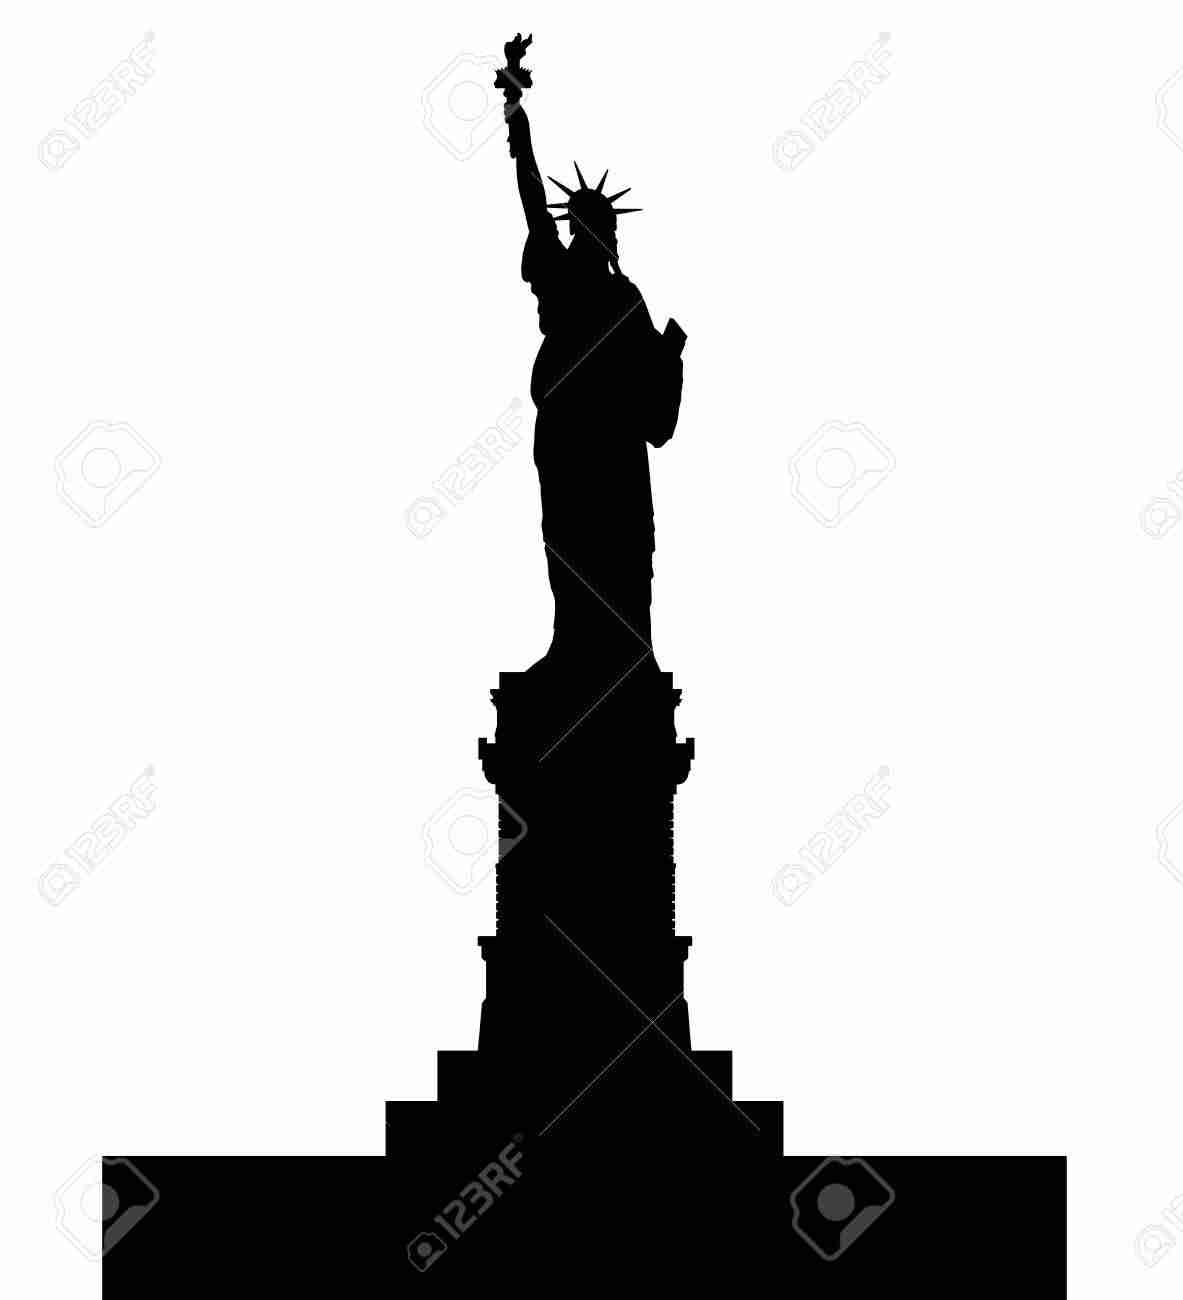 1183x1300 Statue Of Liberty Silhouette Free Download Clip Art